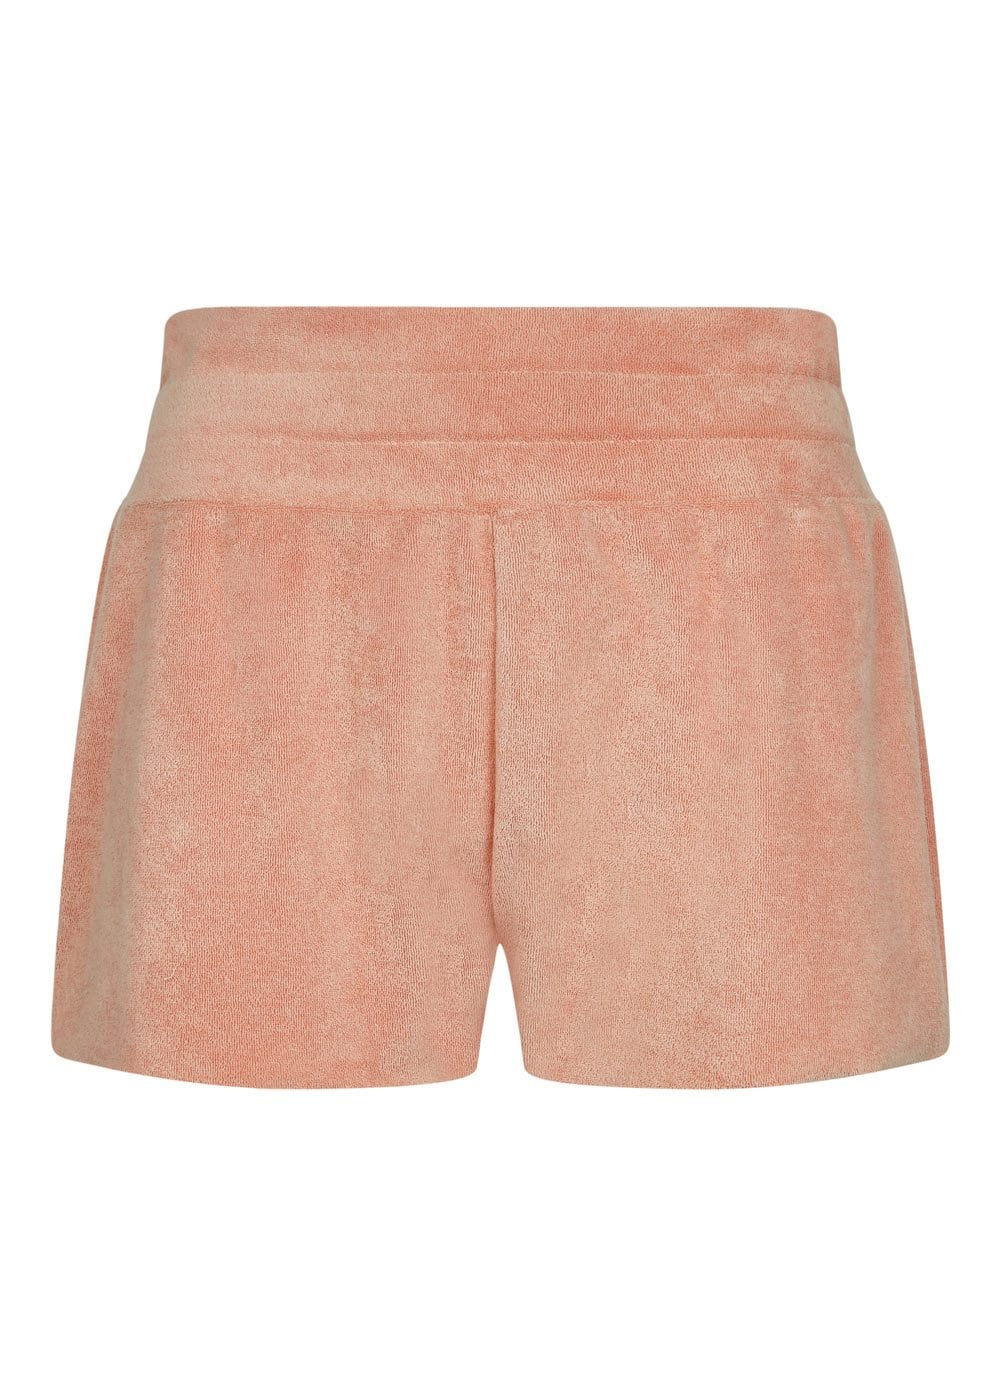 Teenzshop Youth Girls Coral Orange Terry Shorts